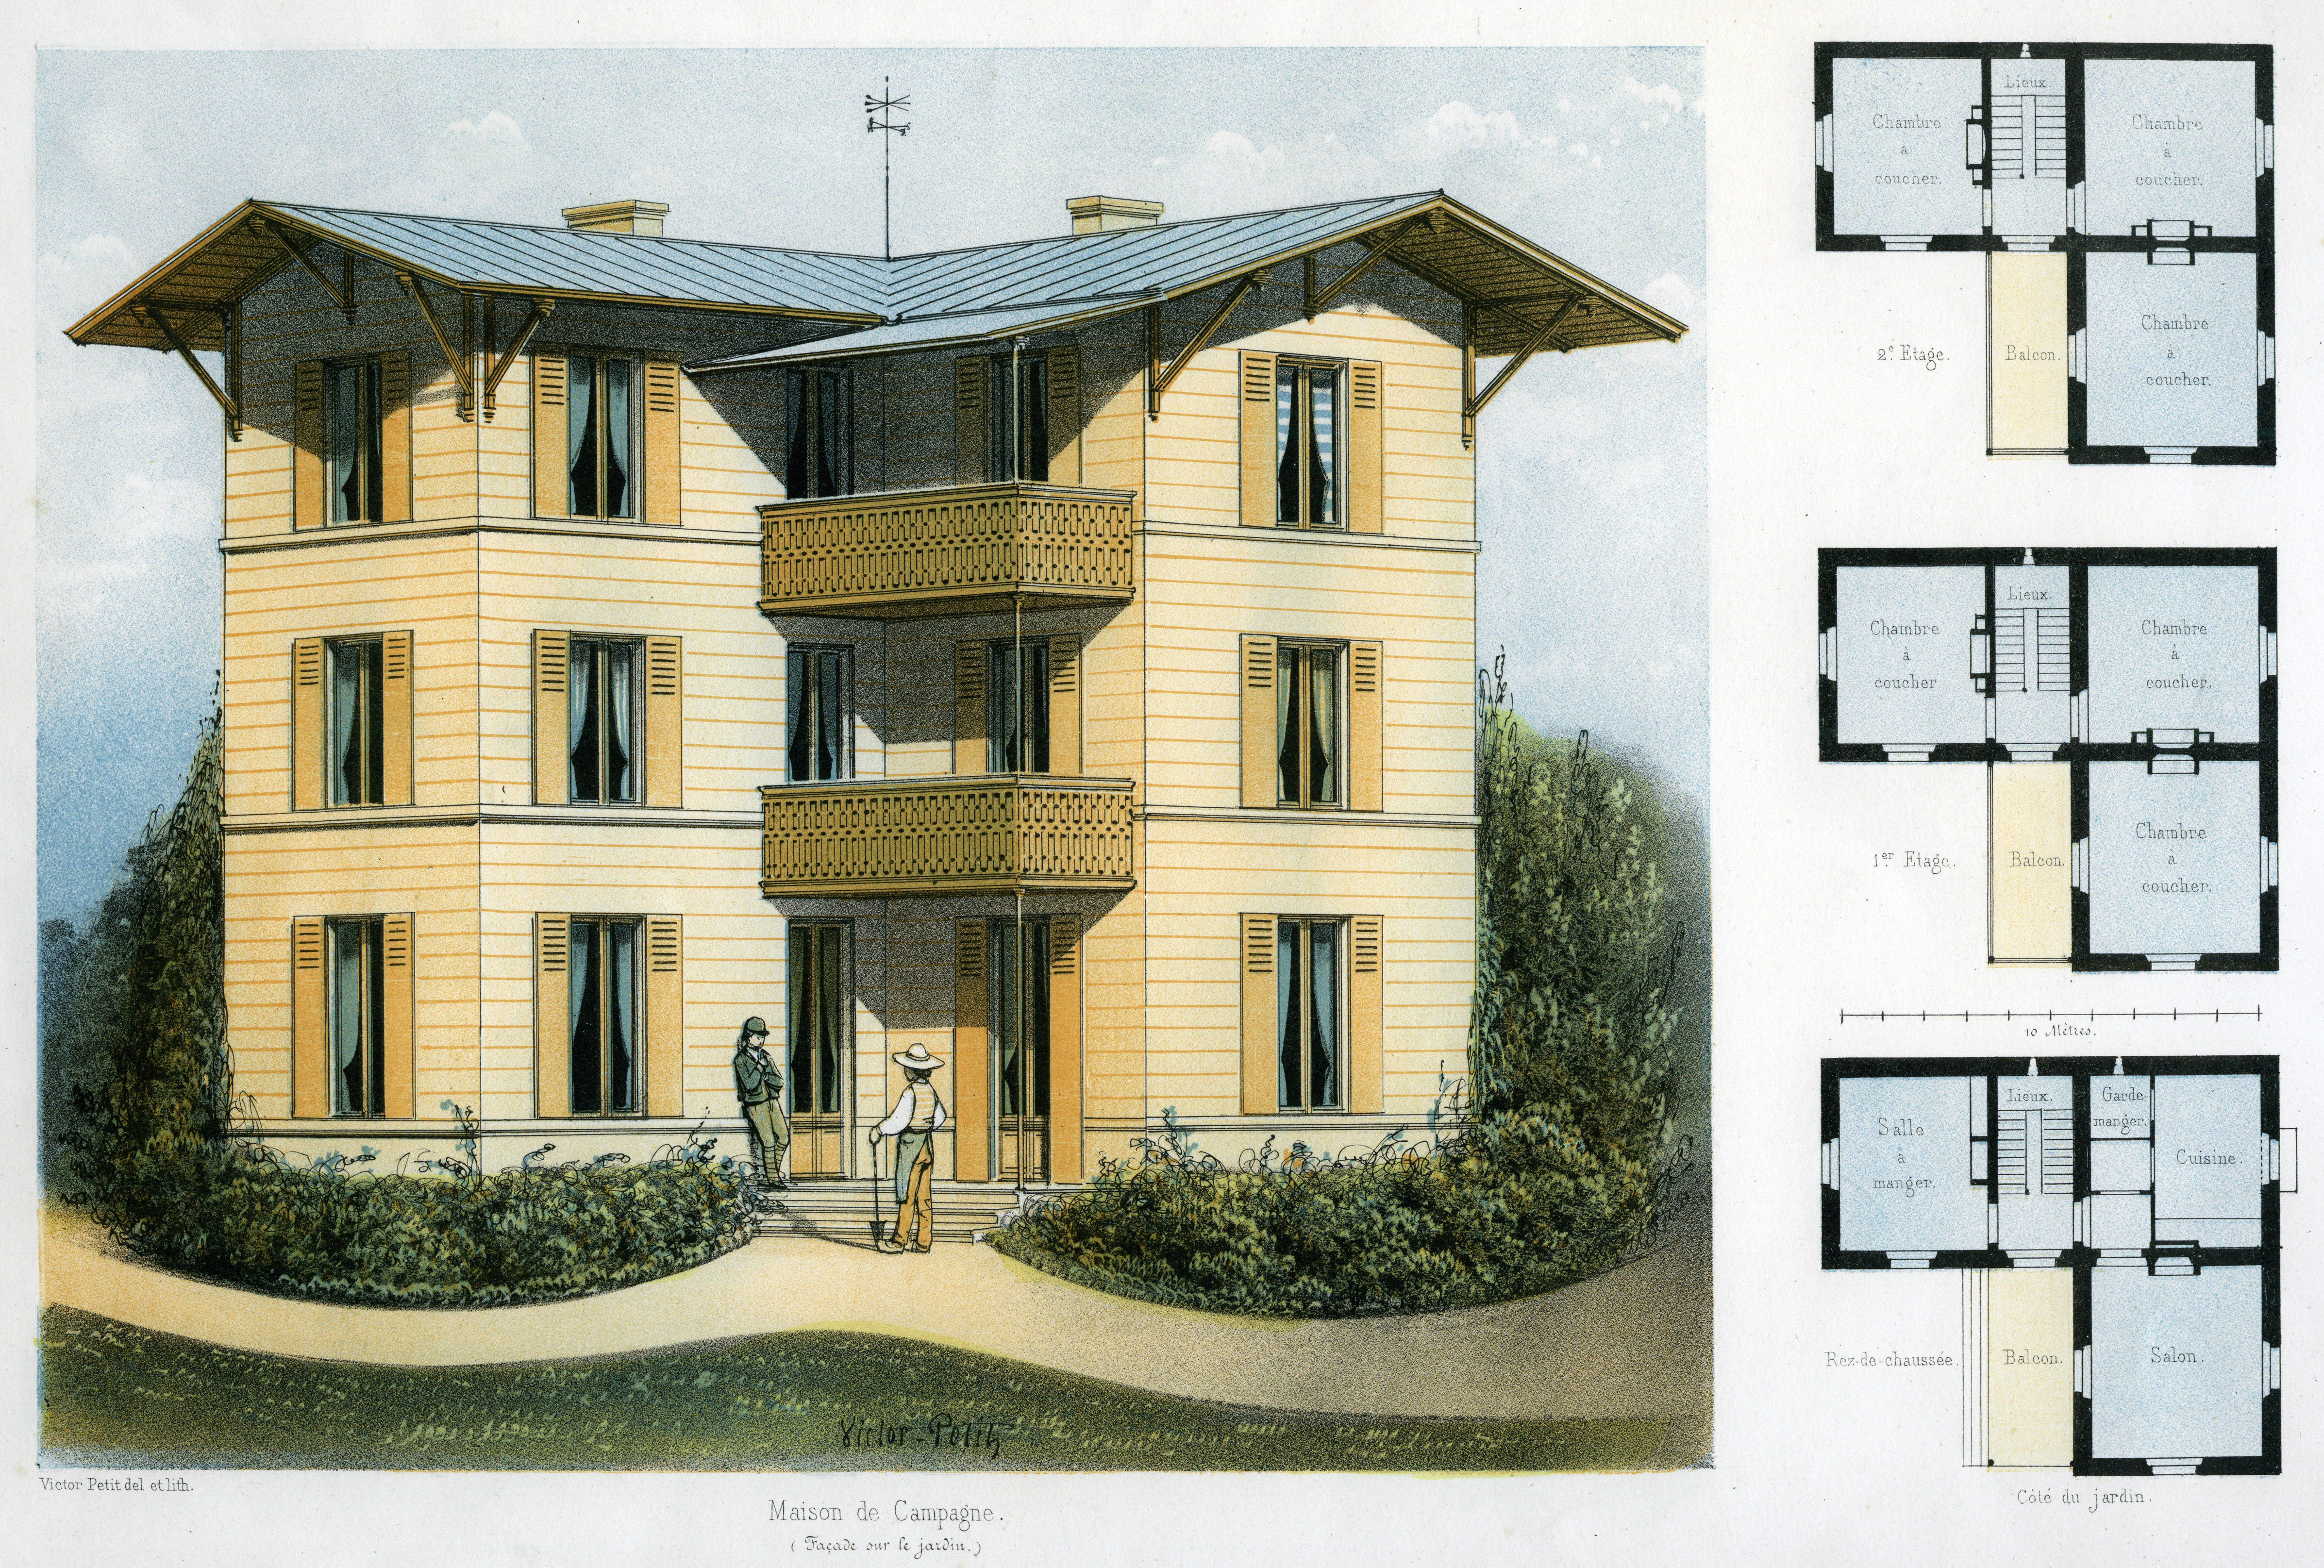 Illustration and floor plans for a three-story country house near Paris, France